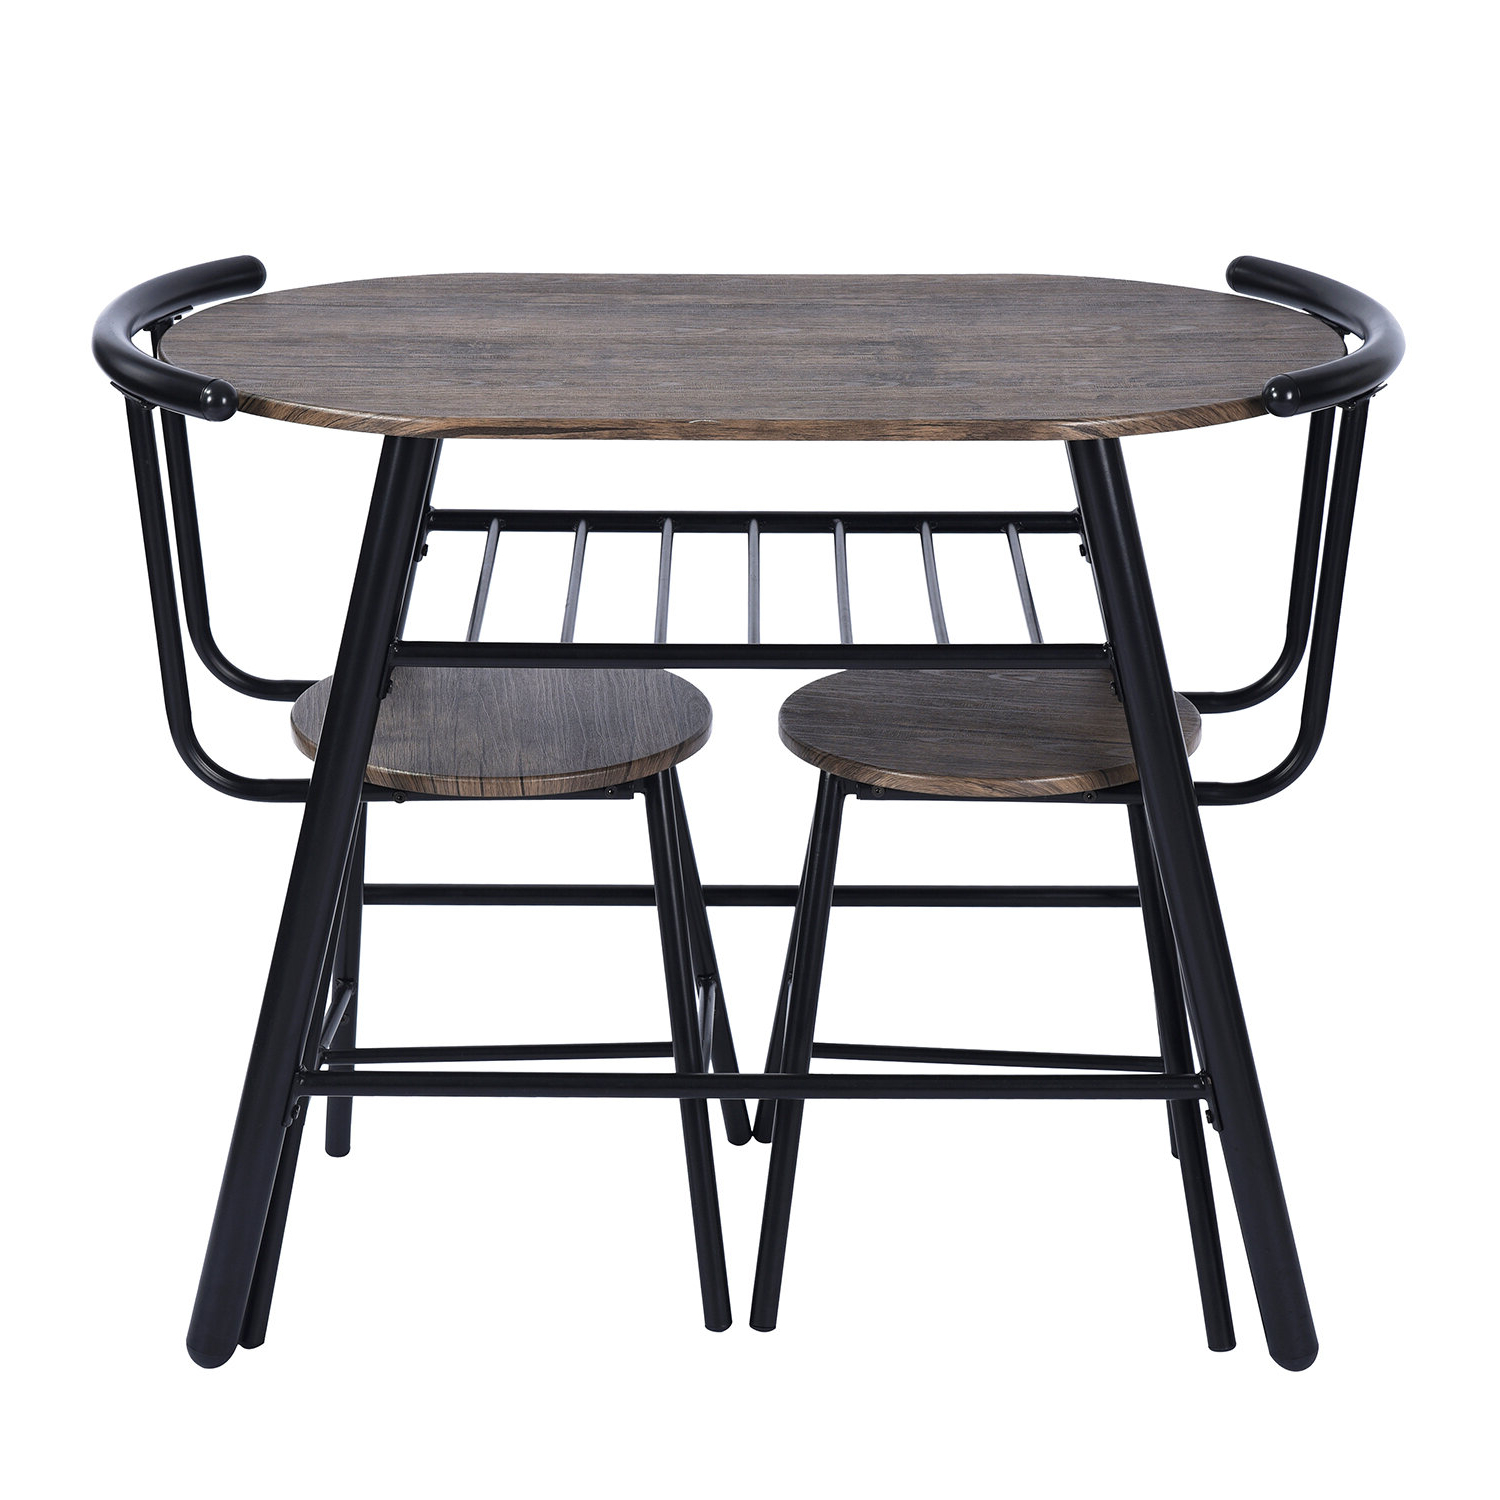 Debby Small Space 3 Piece Dining Sets within Well known Details About Williston Forge Peckham 3 Piece Dining Set